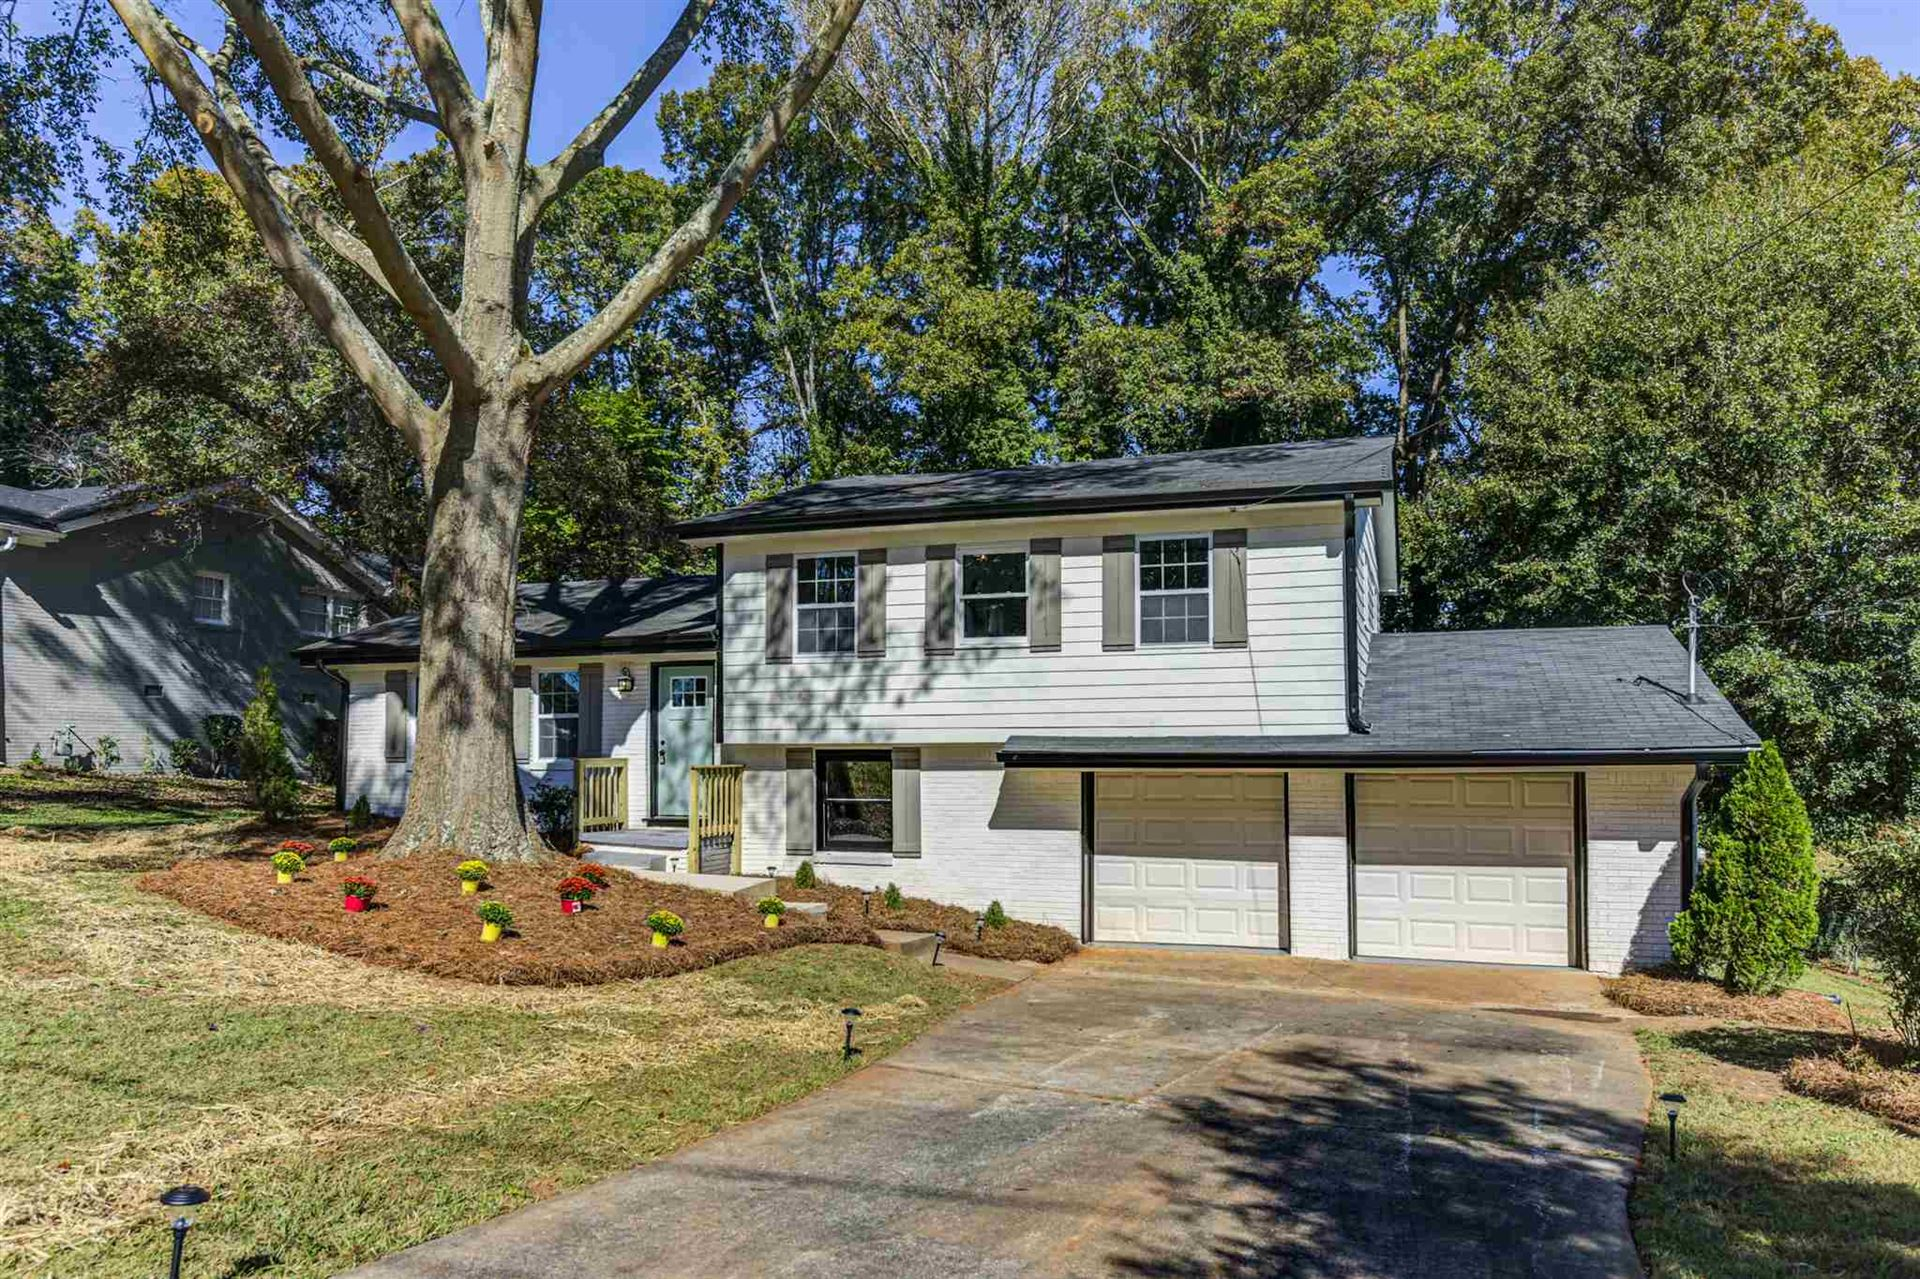 4320 Pleasant Forrest Dr, Decatur, GA 30034 - #: 8884512